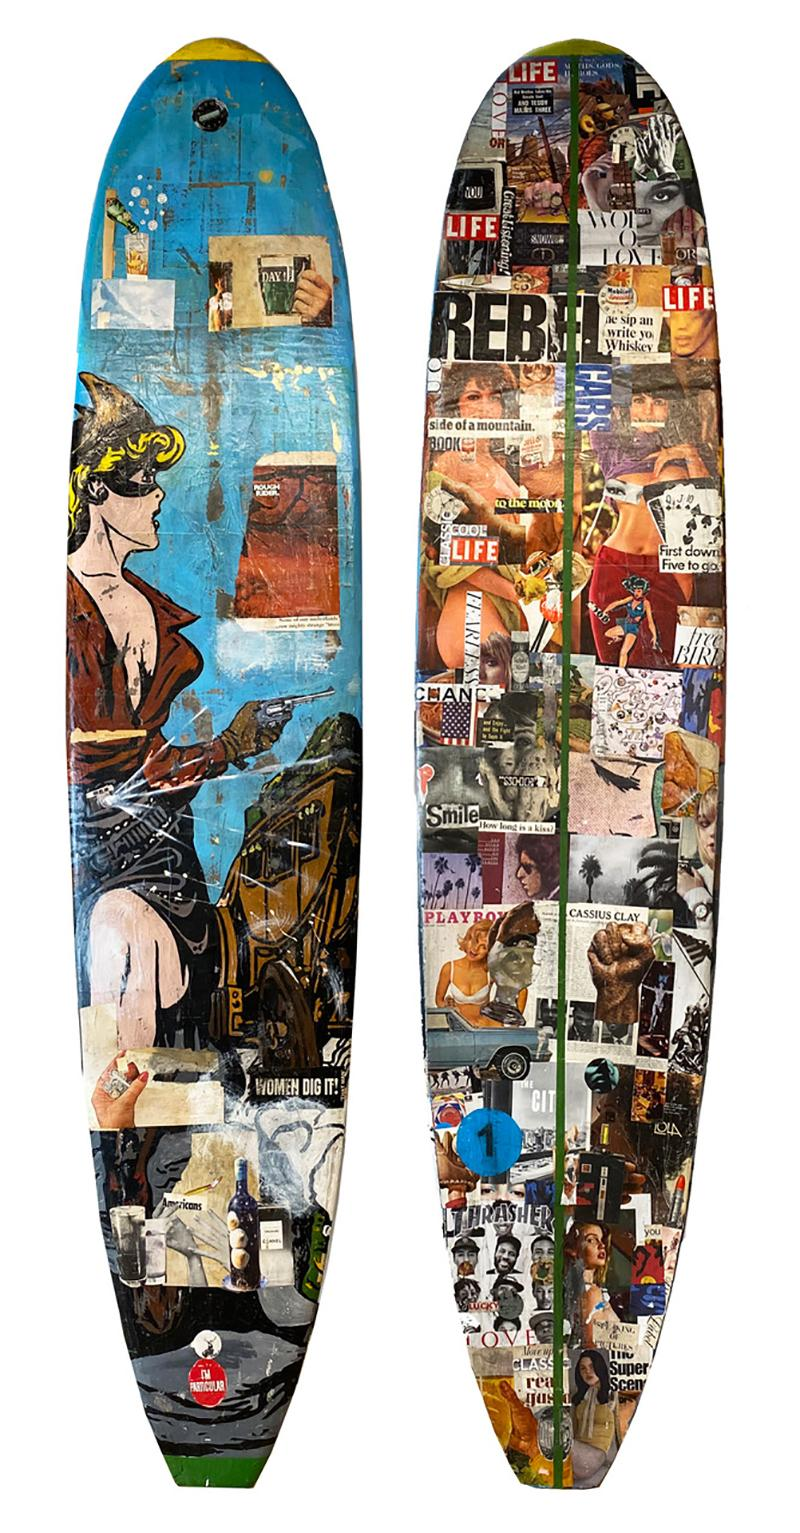 Woman Dig It, 2021_Greg Miller_Acrylic/Collage/Resin/Reclaimed Surfboard